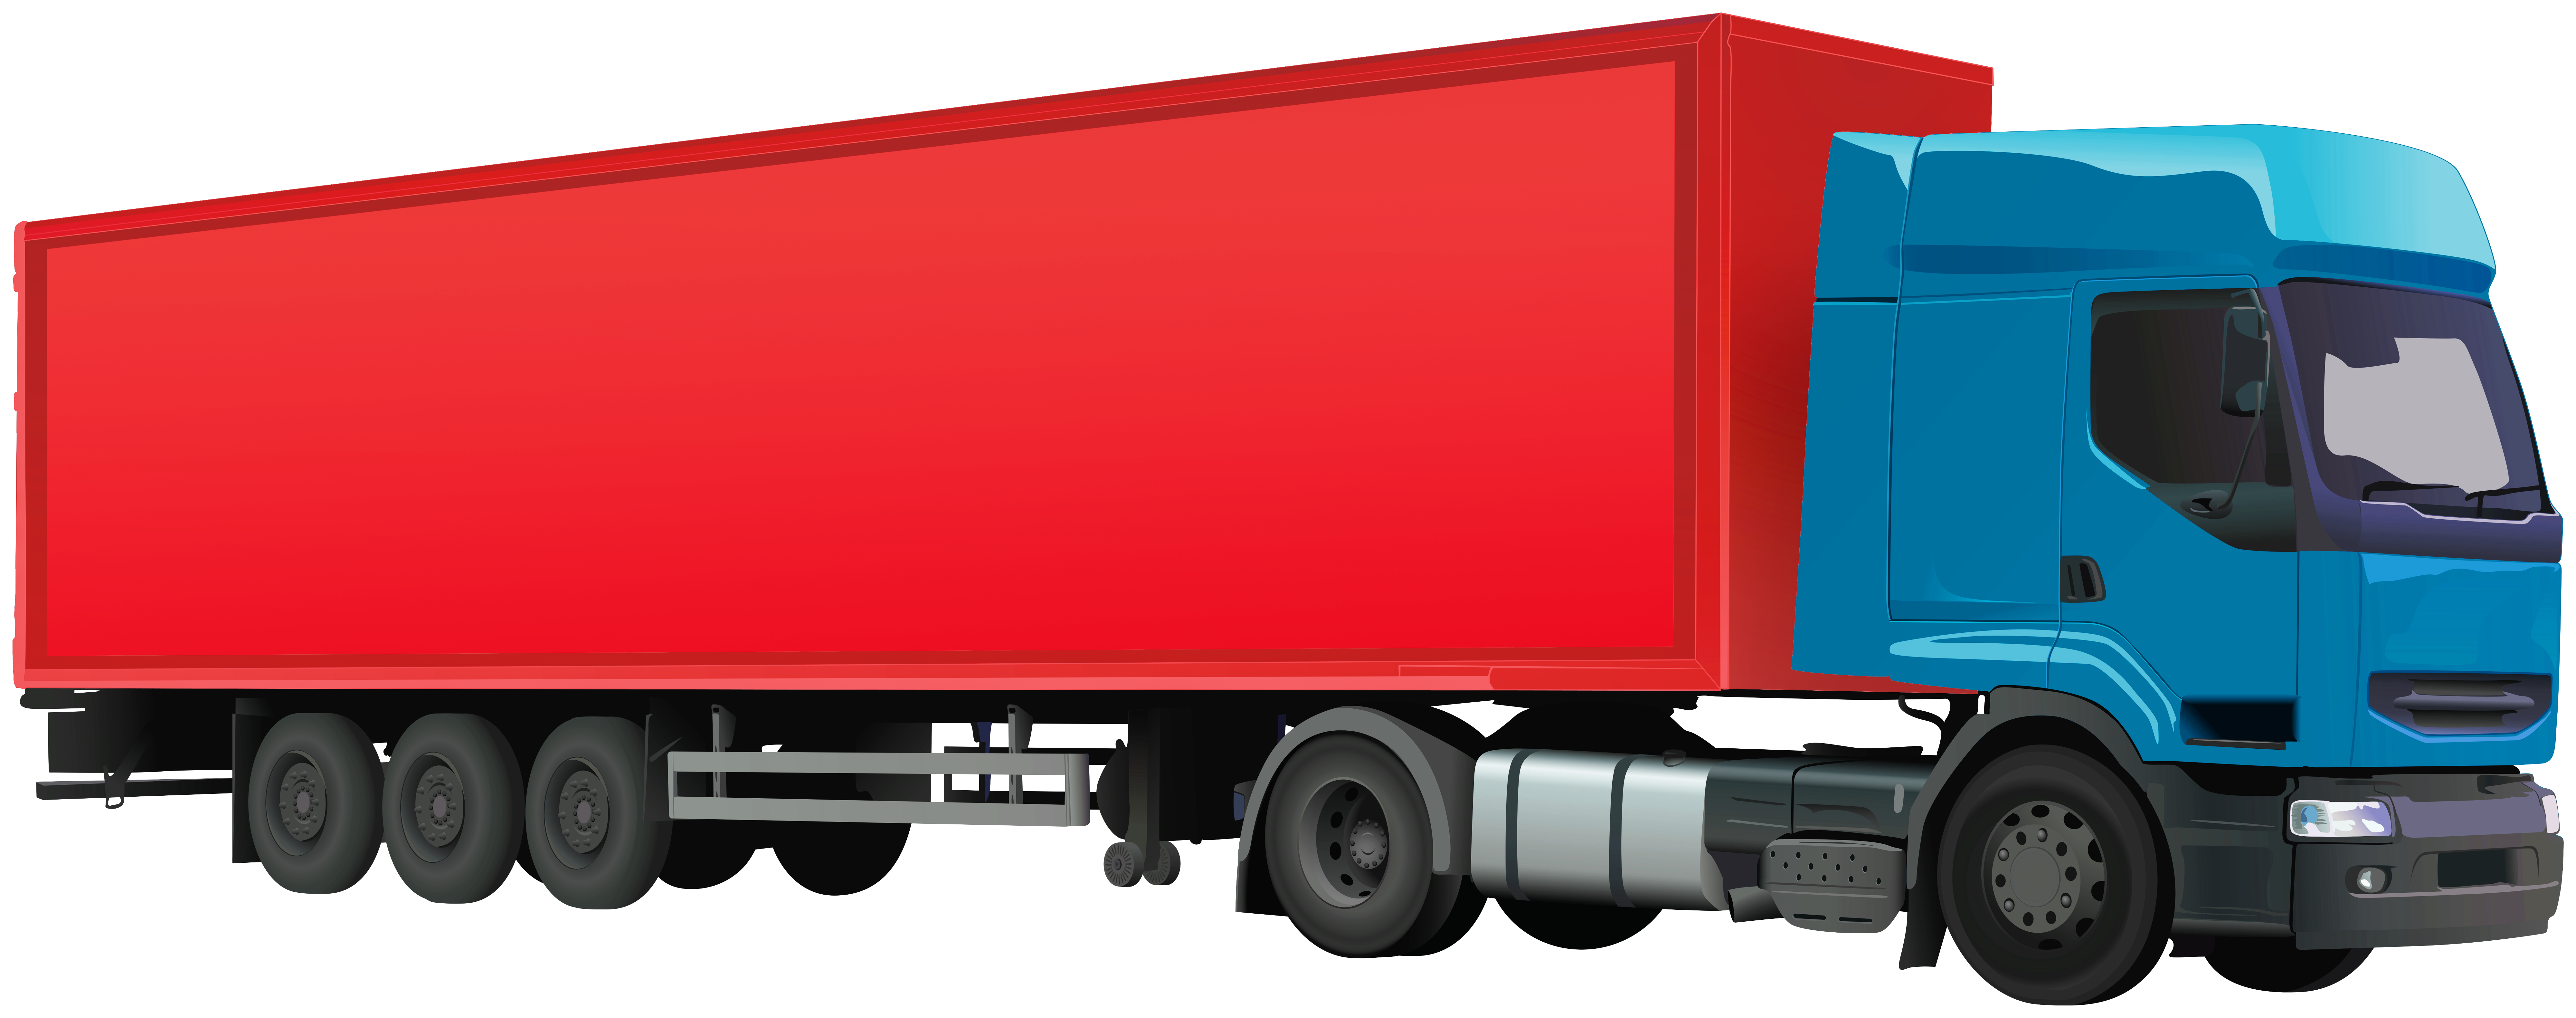 Auto transport truck clipart graphic library Container Truck PNG Clip Art - Best WEB Clipart graphic library